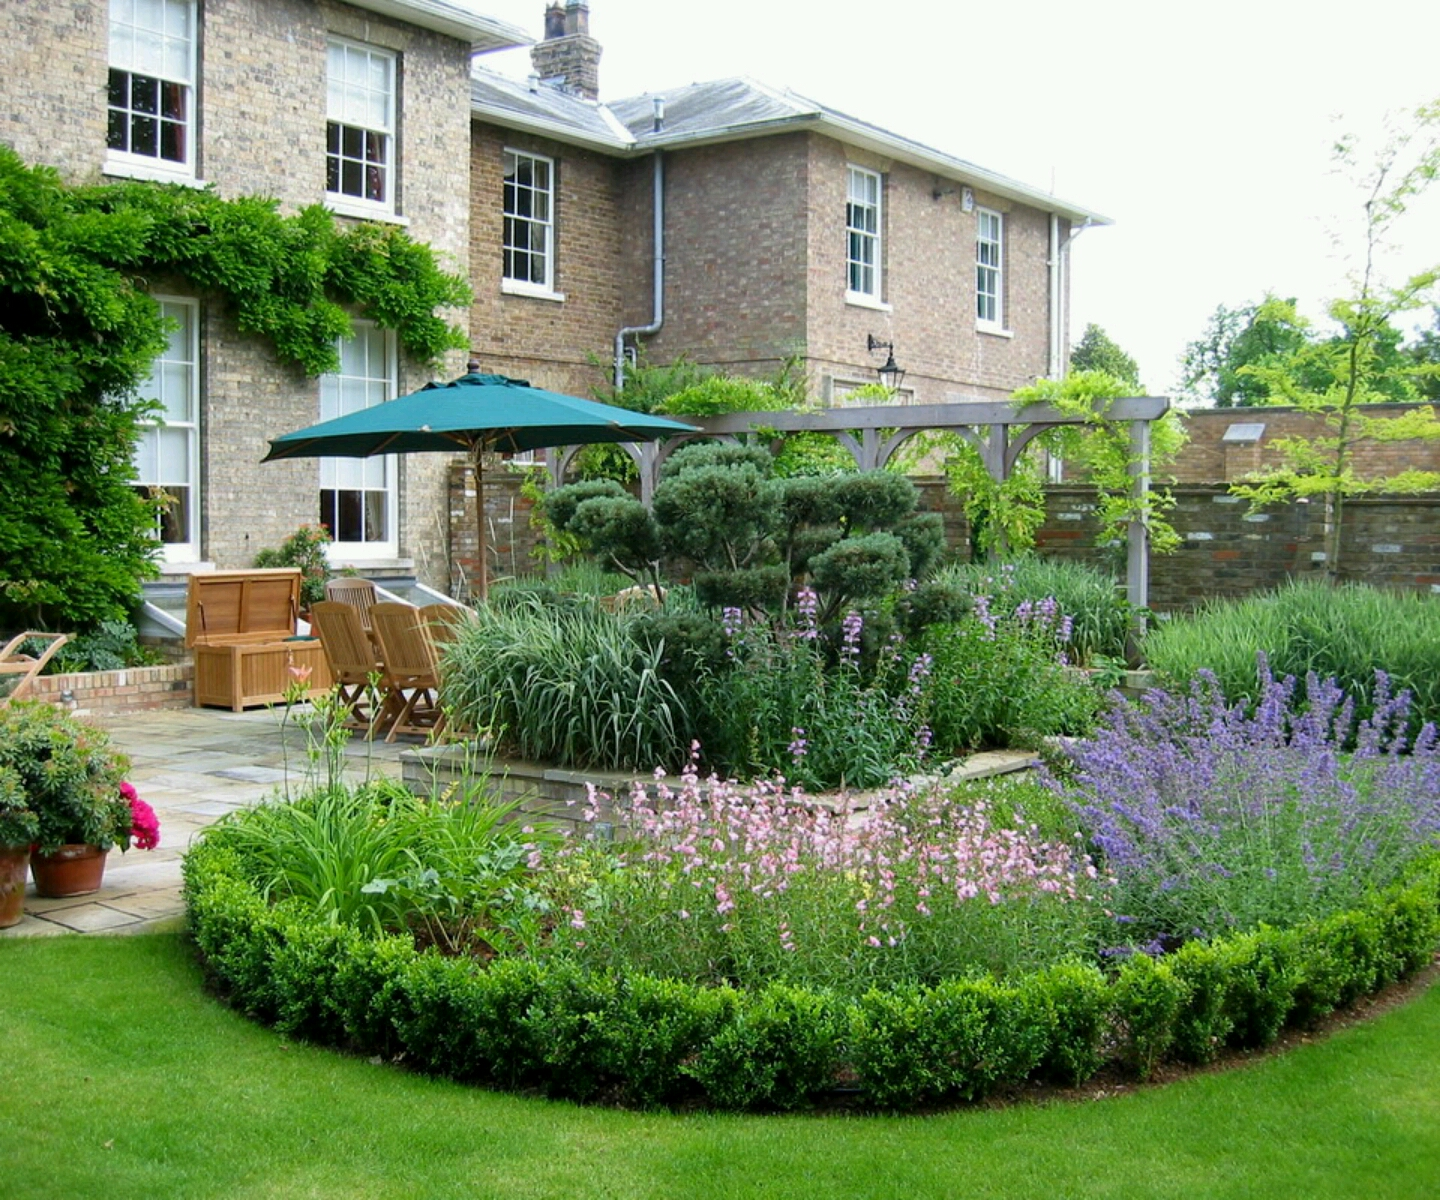 Modern garden design ideas photograph new home designs lat for Latest garden design